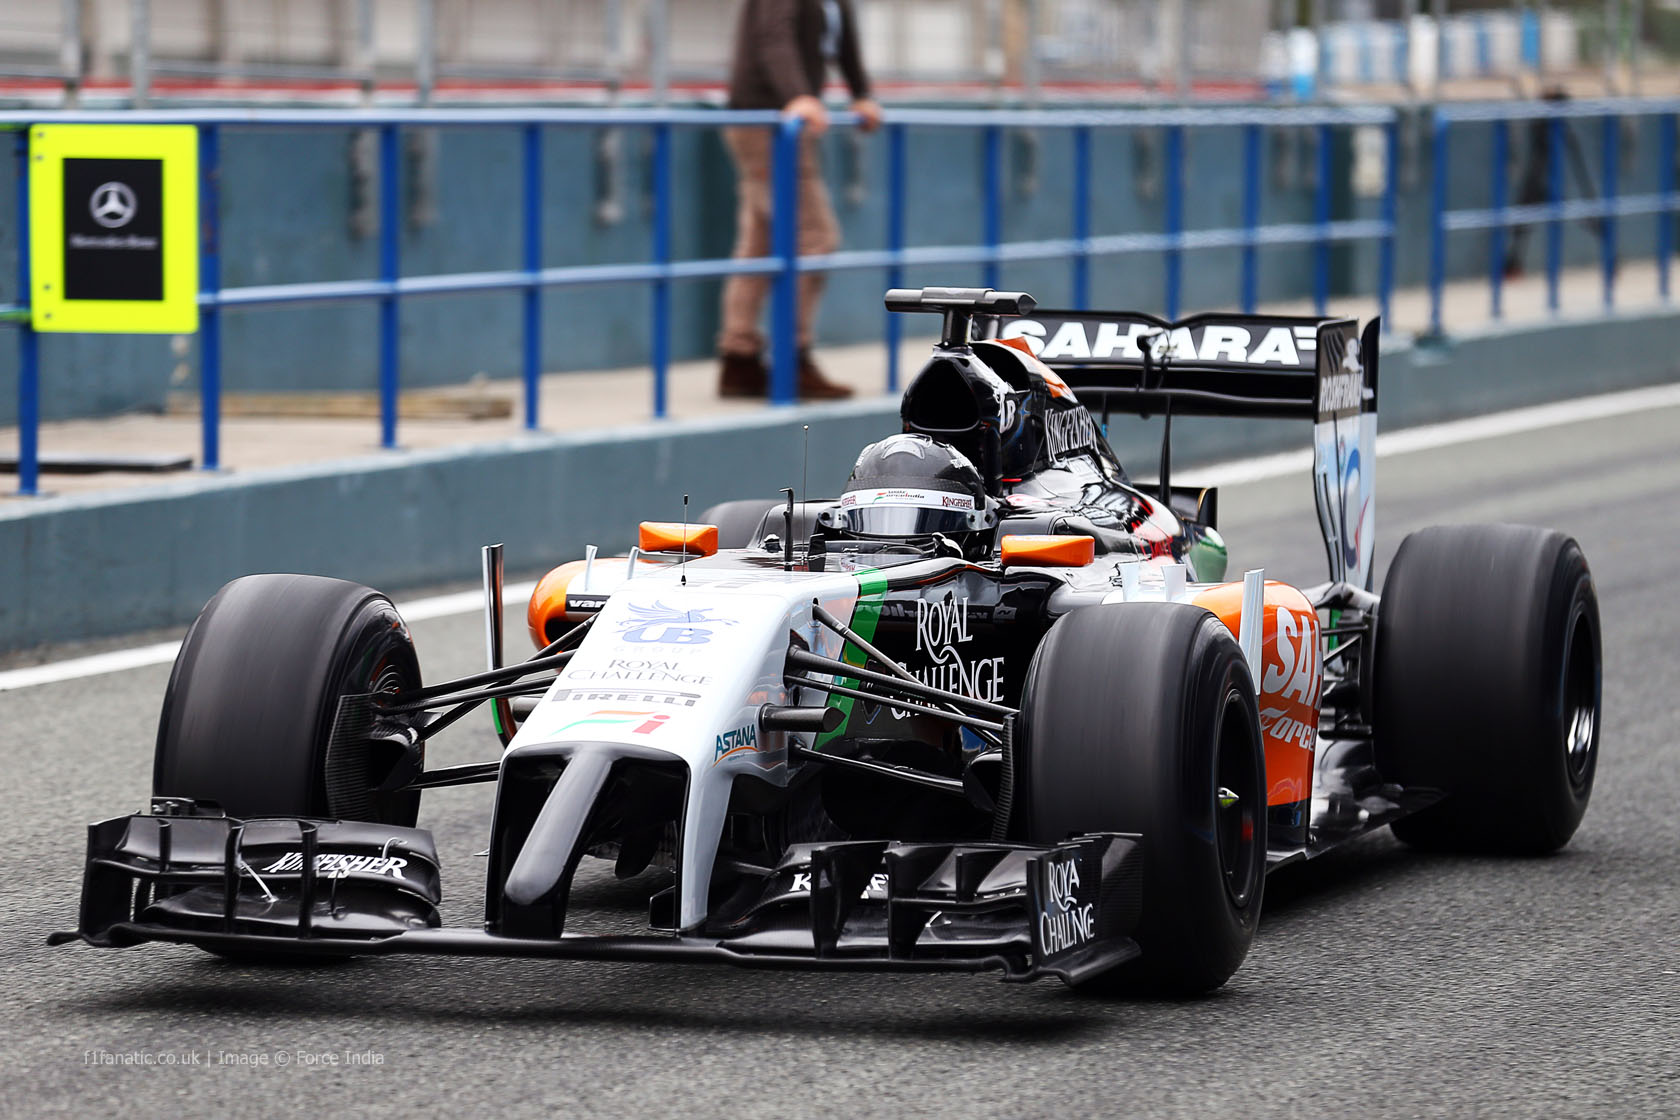 Sergio Perez, Force India, Jerez, 2014